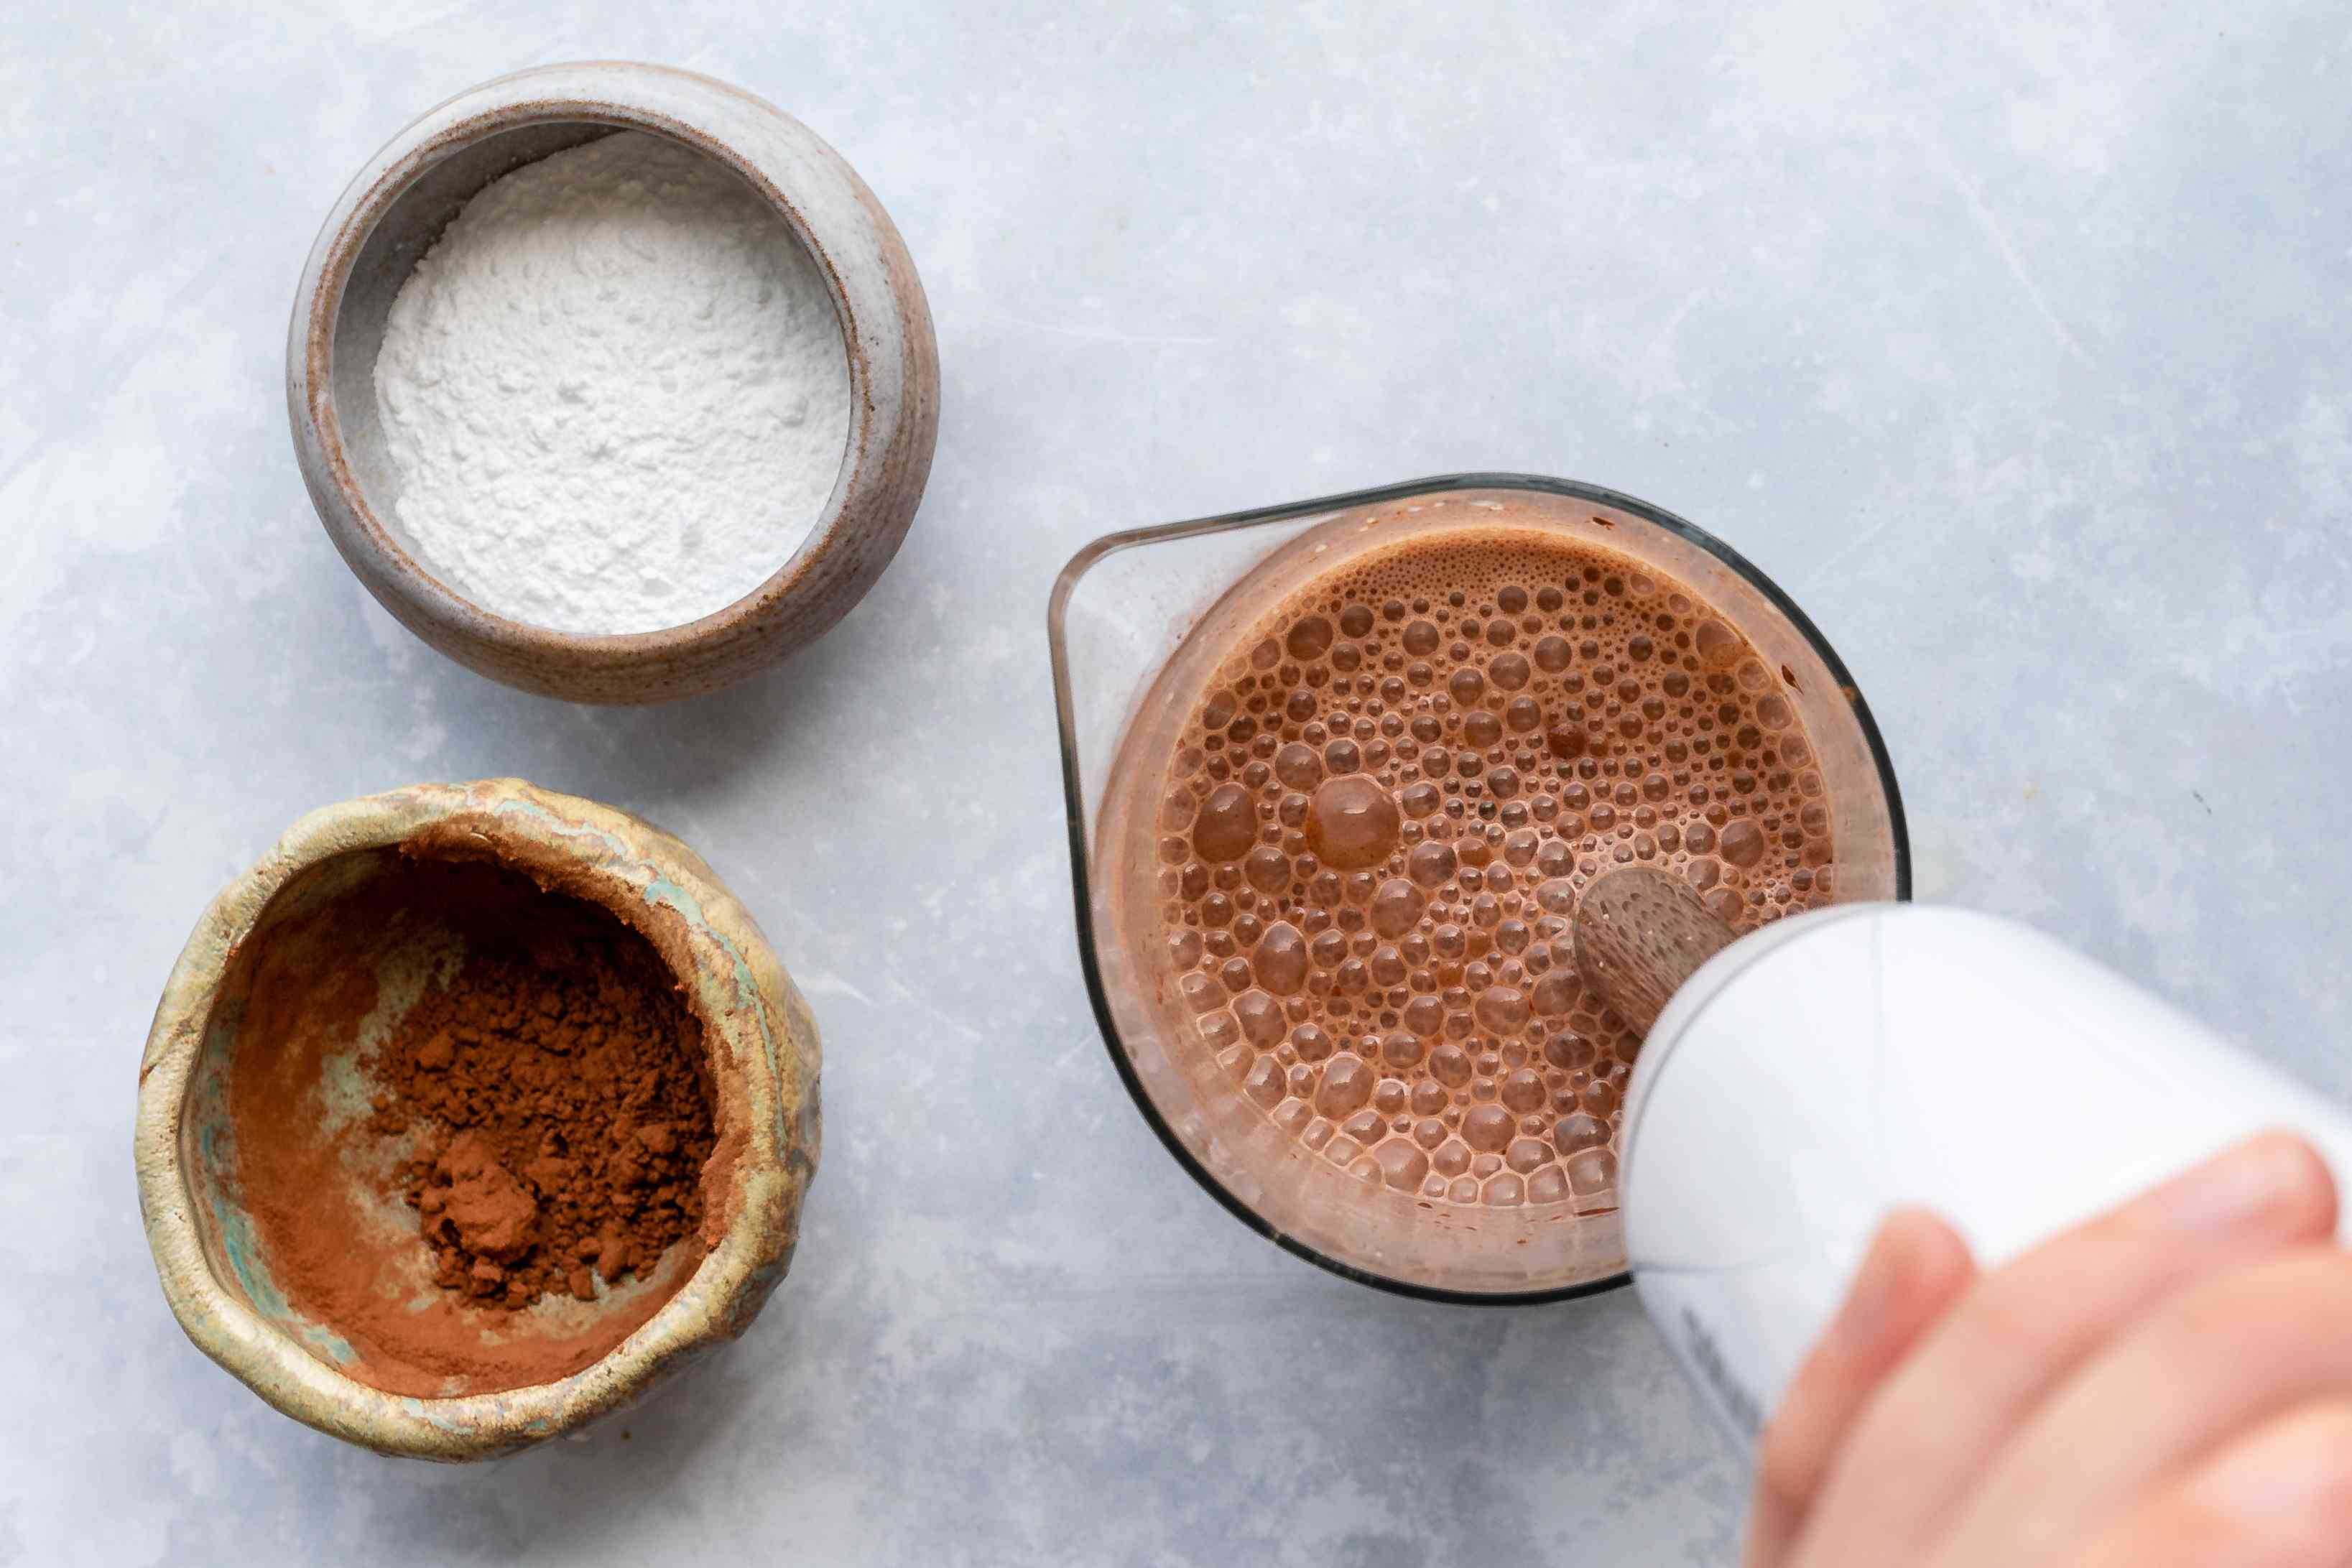 Blending milk and cocoa with an immersion blender